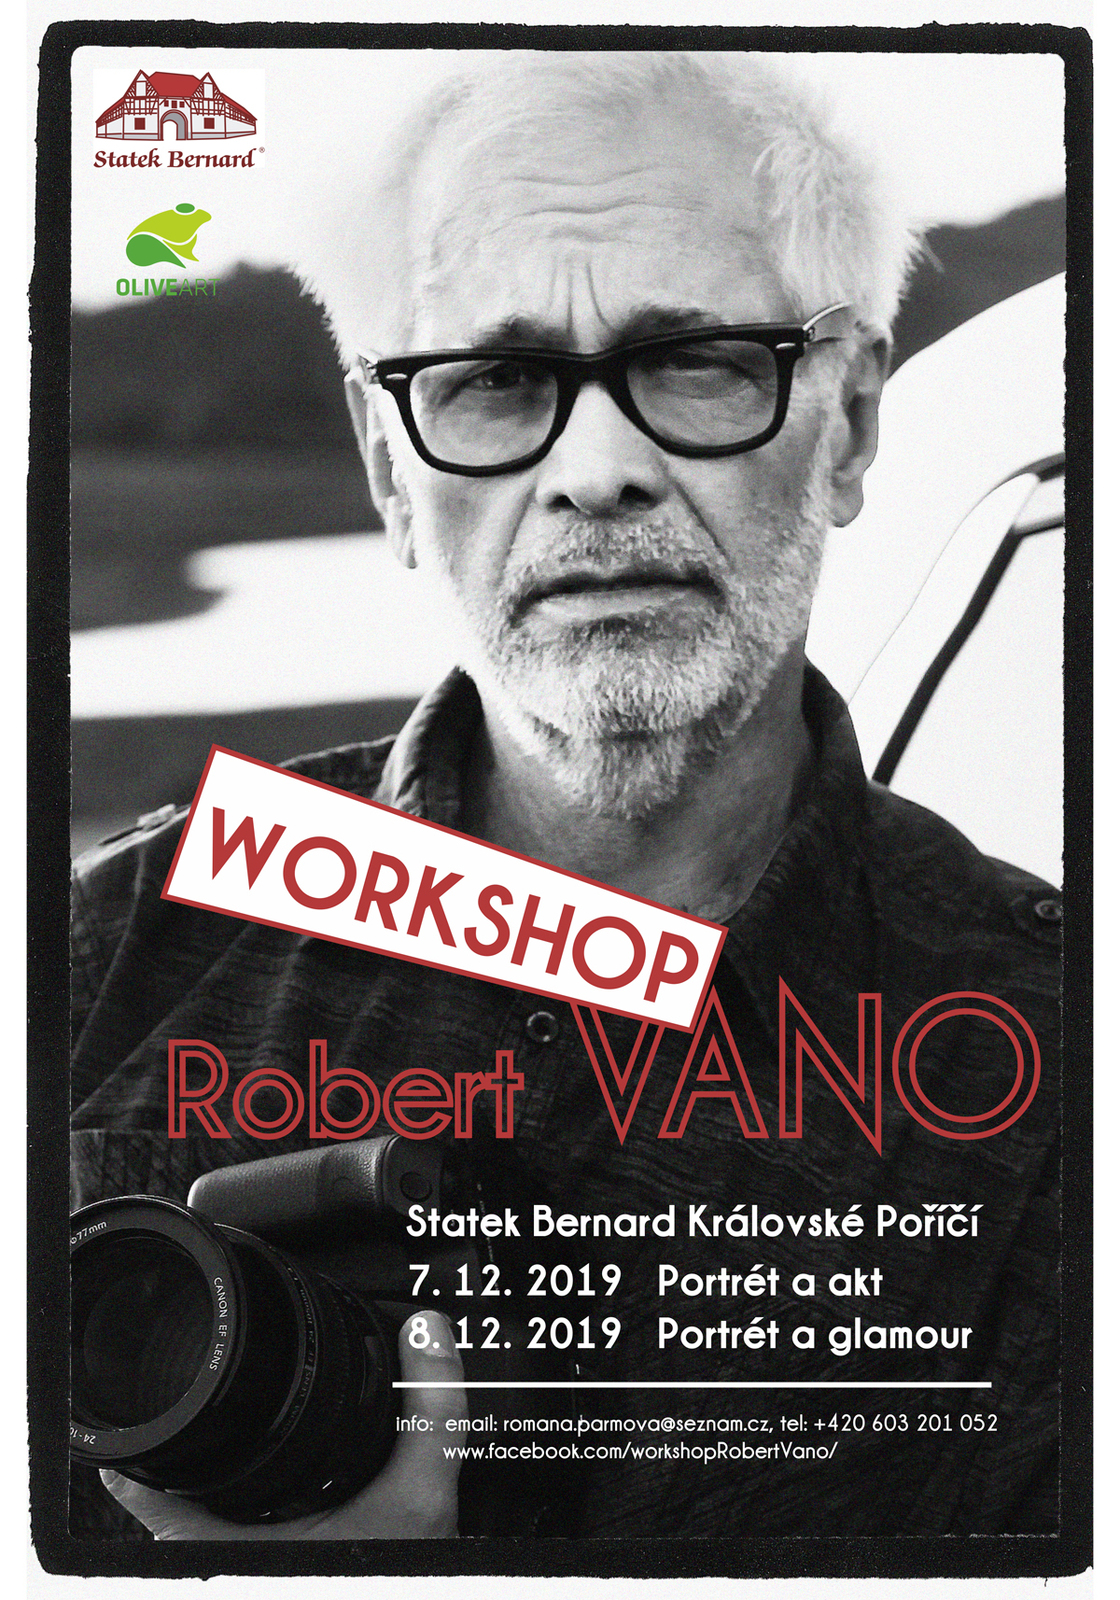 Robert Vano na Statku Bernard - workshop